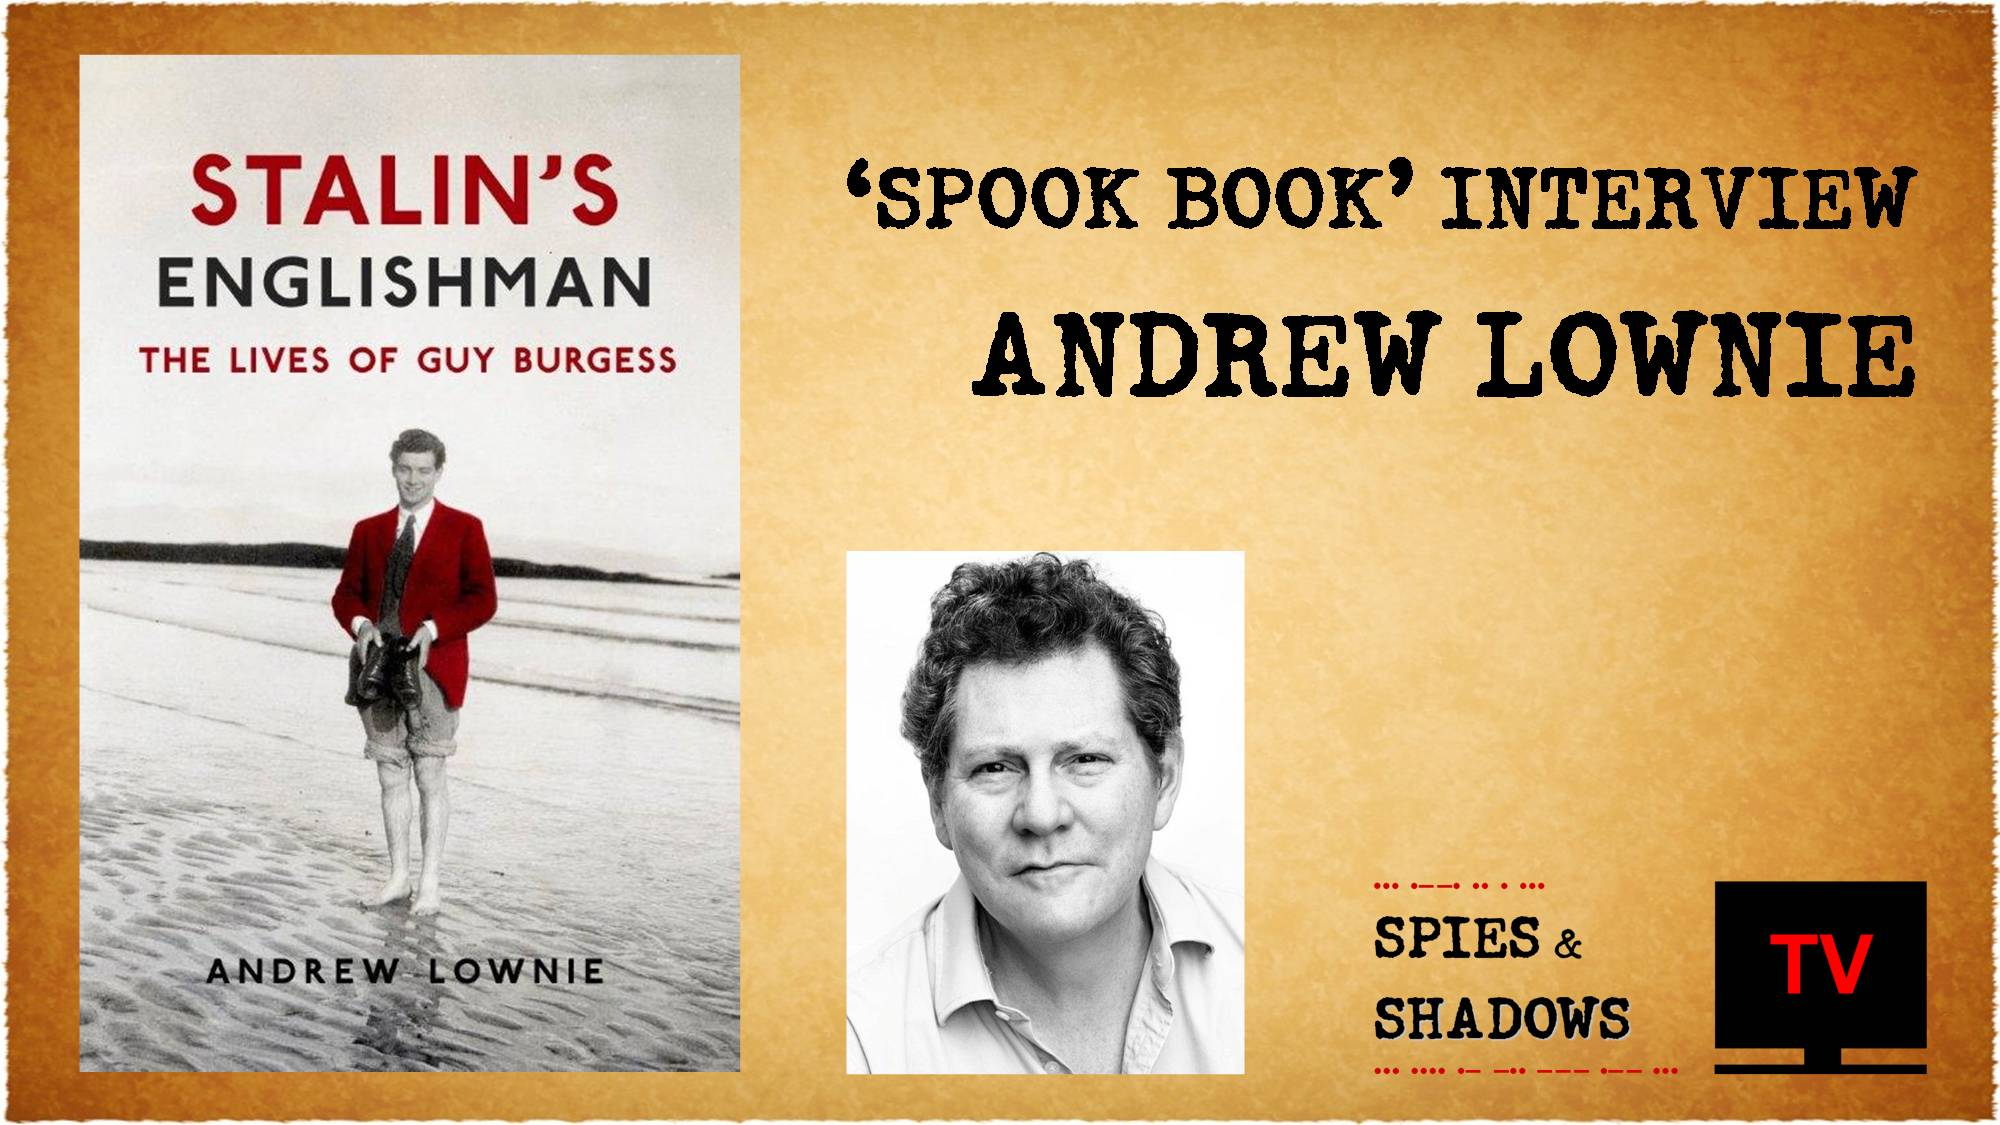 Spies & Shadows TV, Andrew Lownie Interview. Guy Burgess, Stalin's Englishman